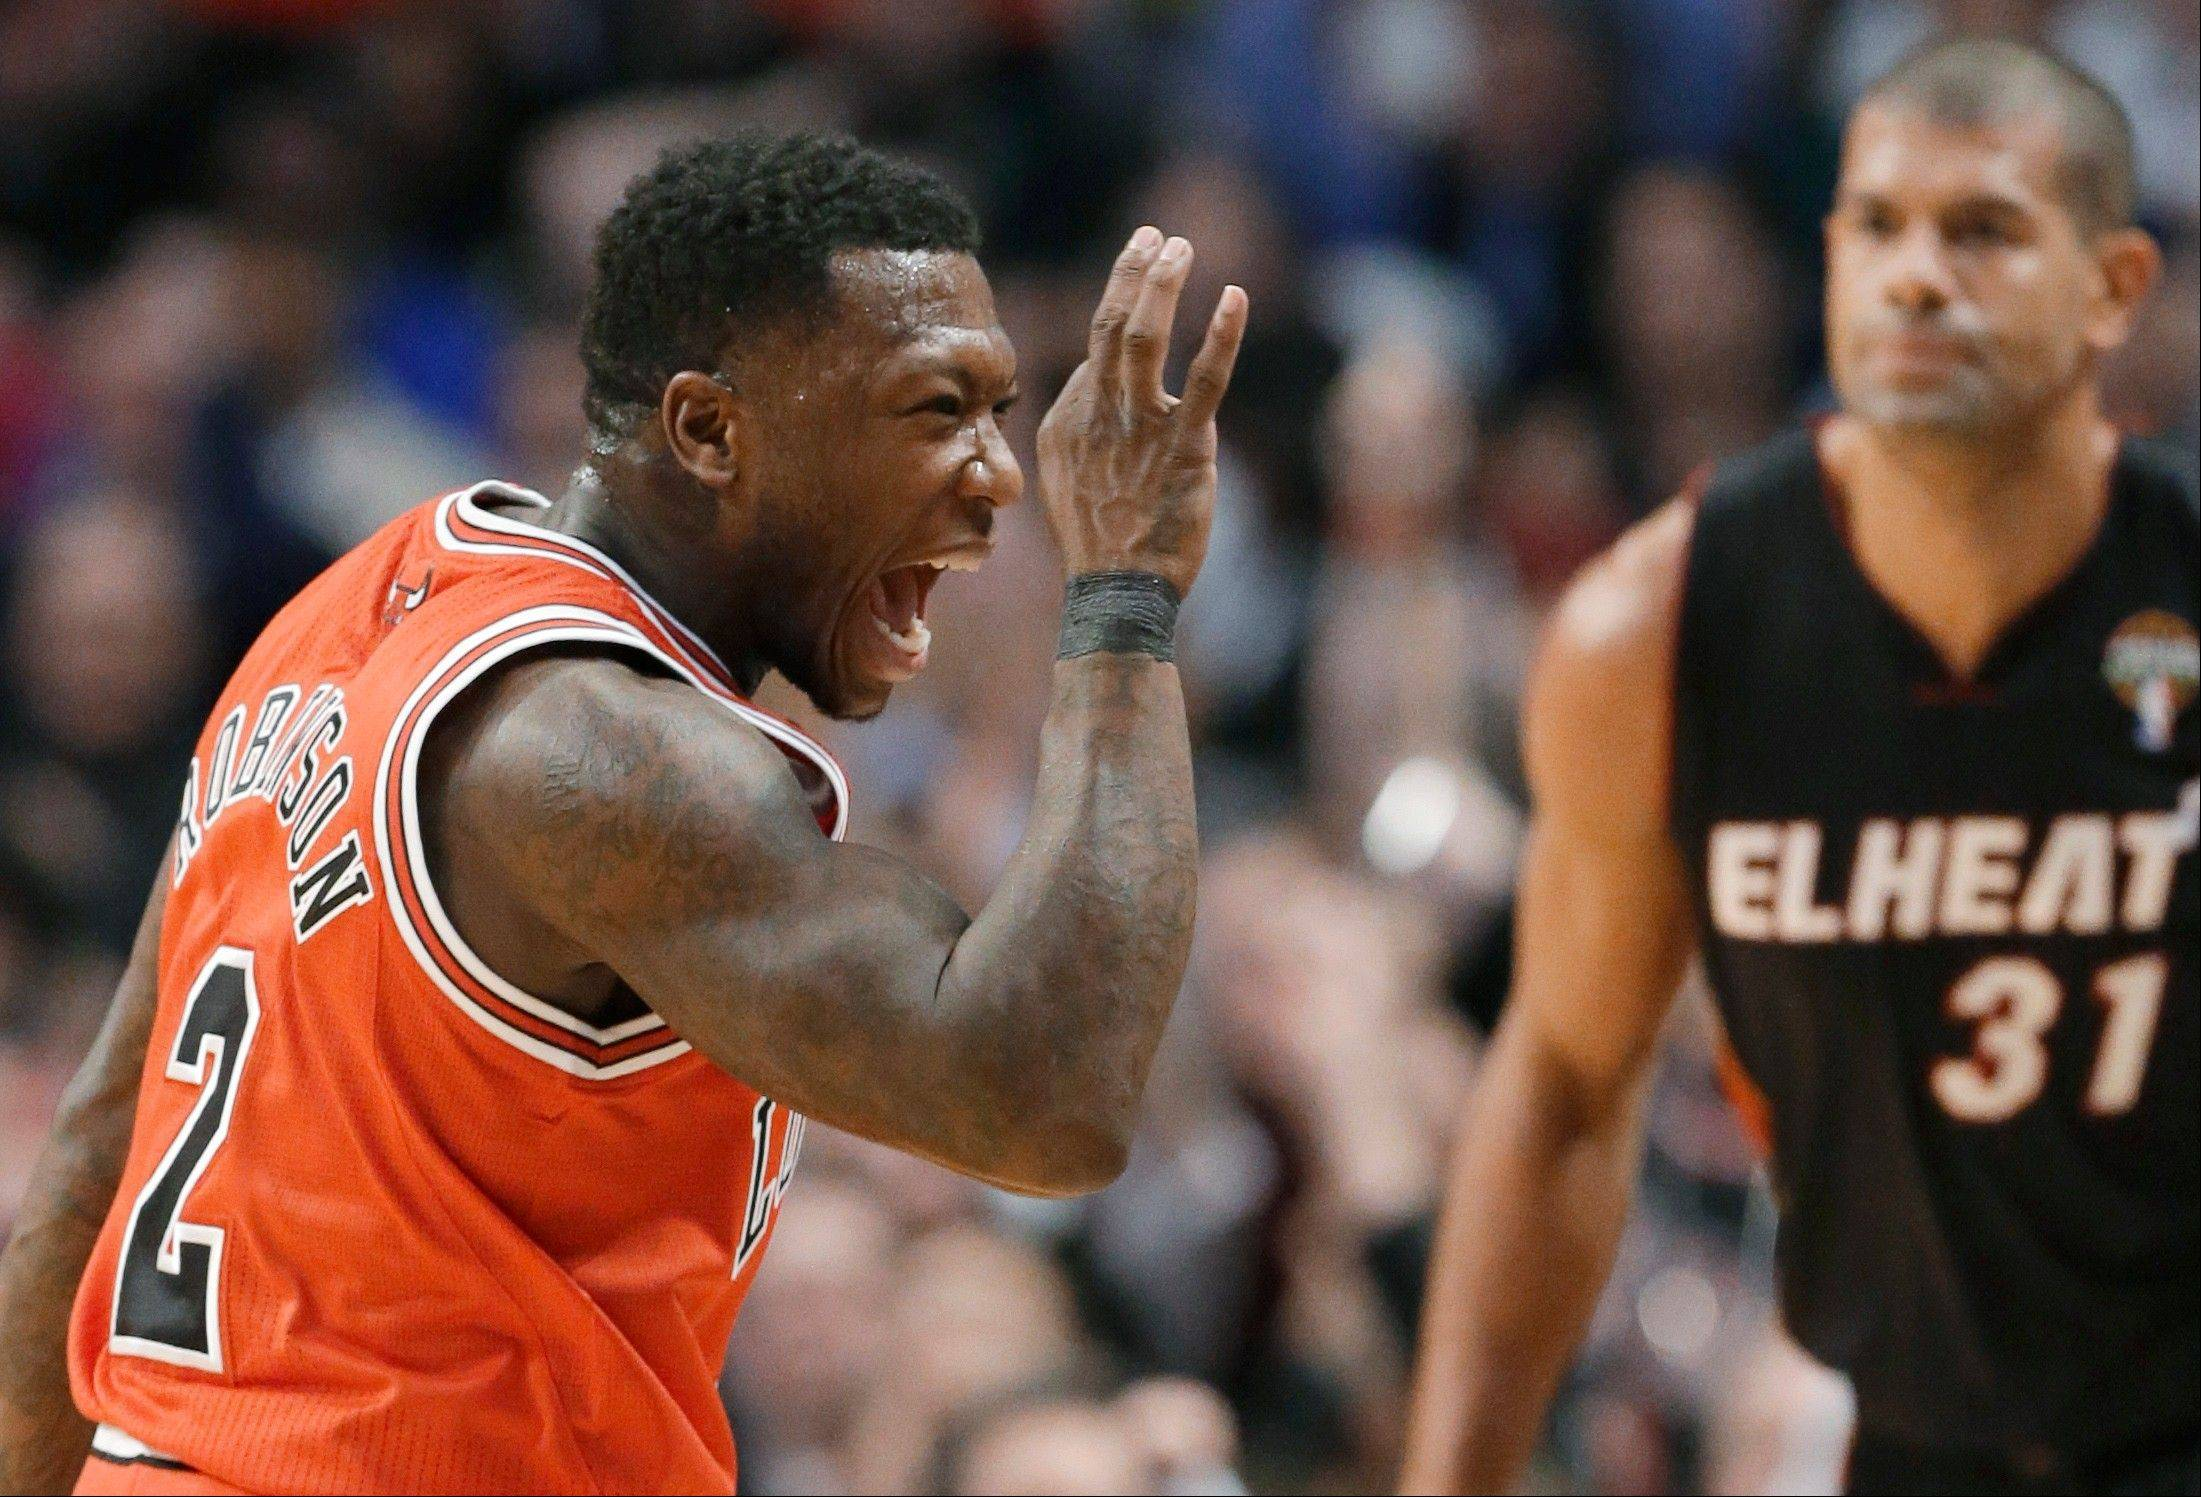 Bulls guard Nate Robinson, left, celebrates a 3-point shot, as Miami Heat forward Shane Battier watches during the first half last night at the United Center. The Bulls kept celebrating all night, ending the Heat�s 27-game winning streak.